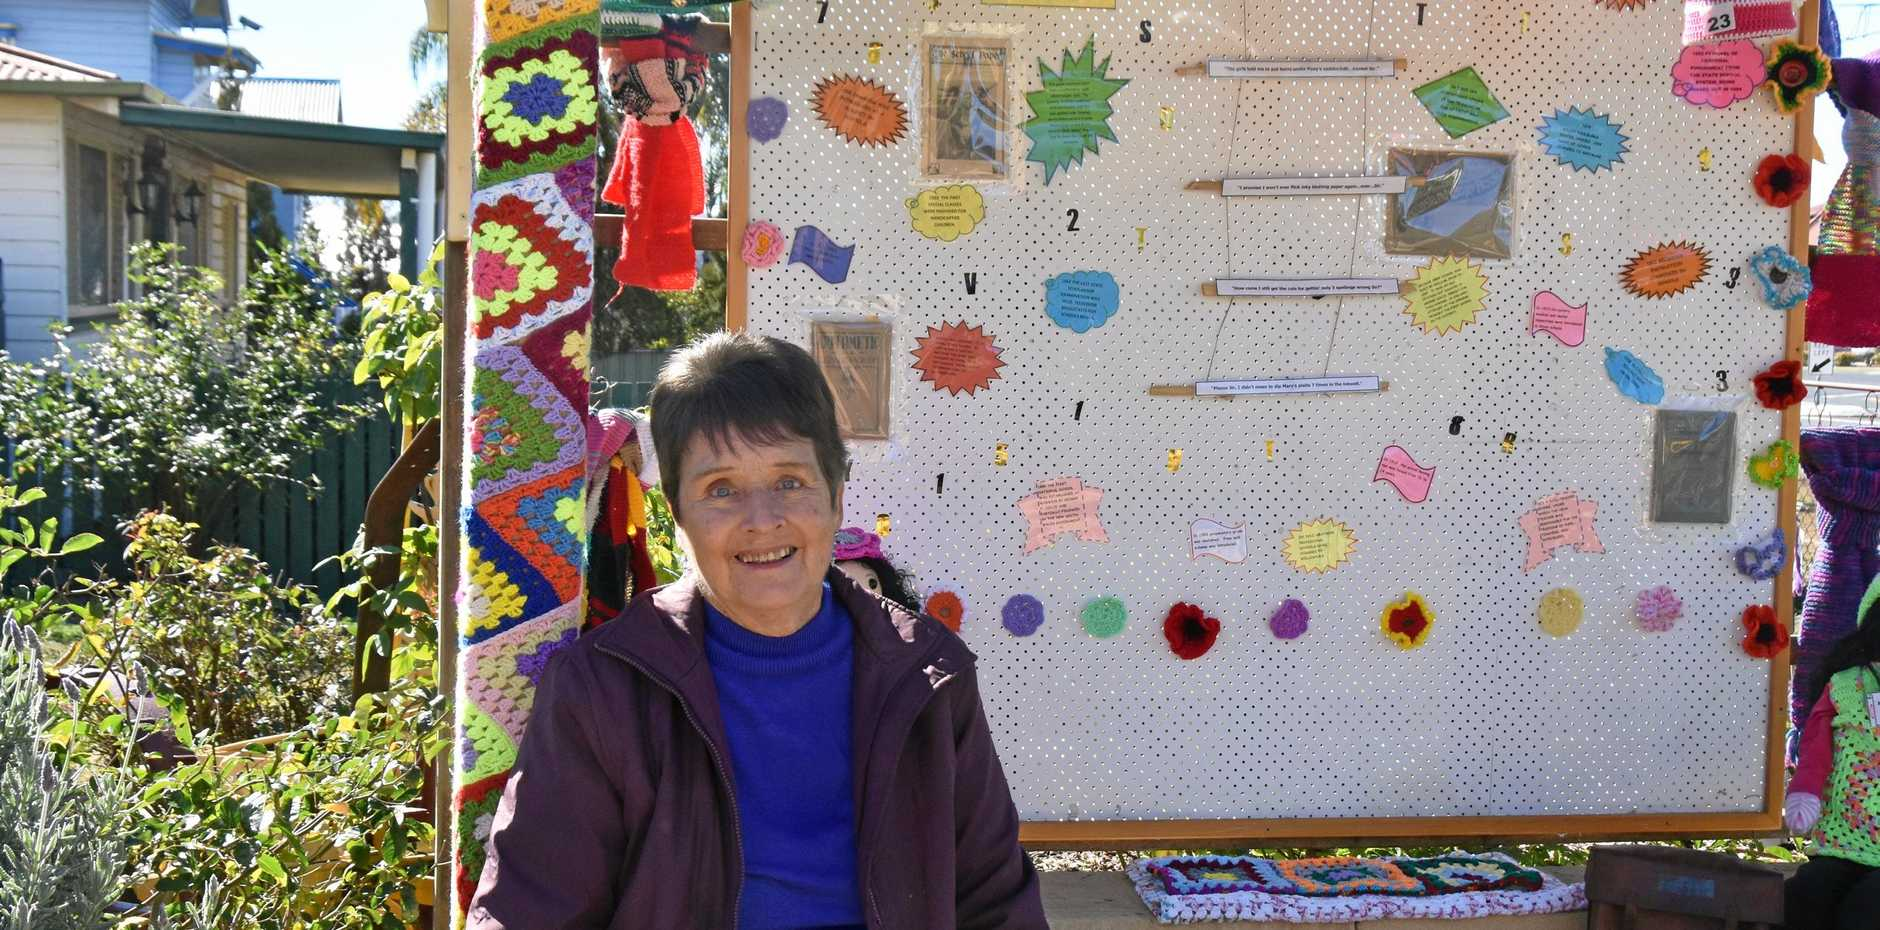 DING DONG: Evelyn Eastwell celebrates region's lost schools in yarnbombing display